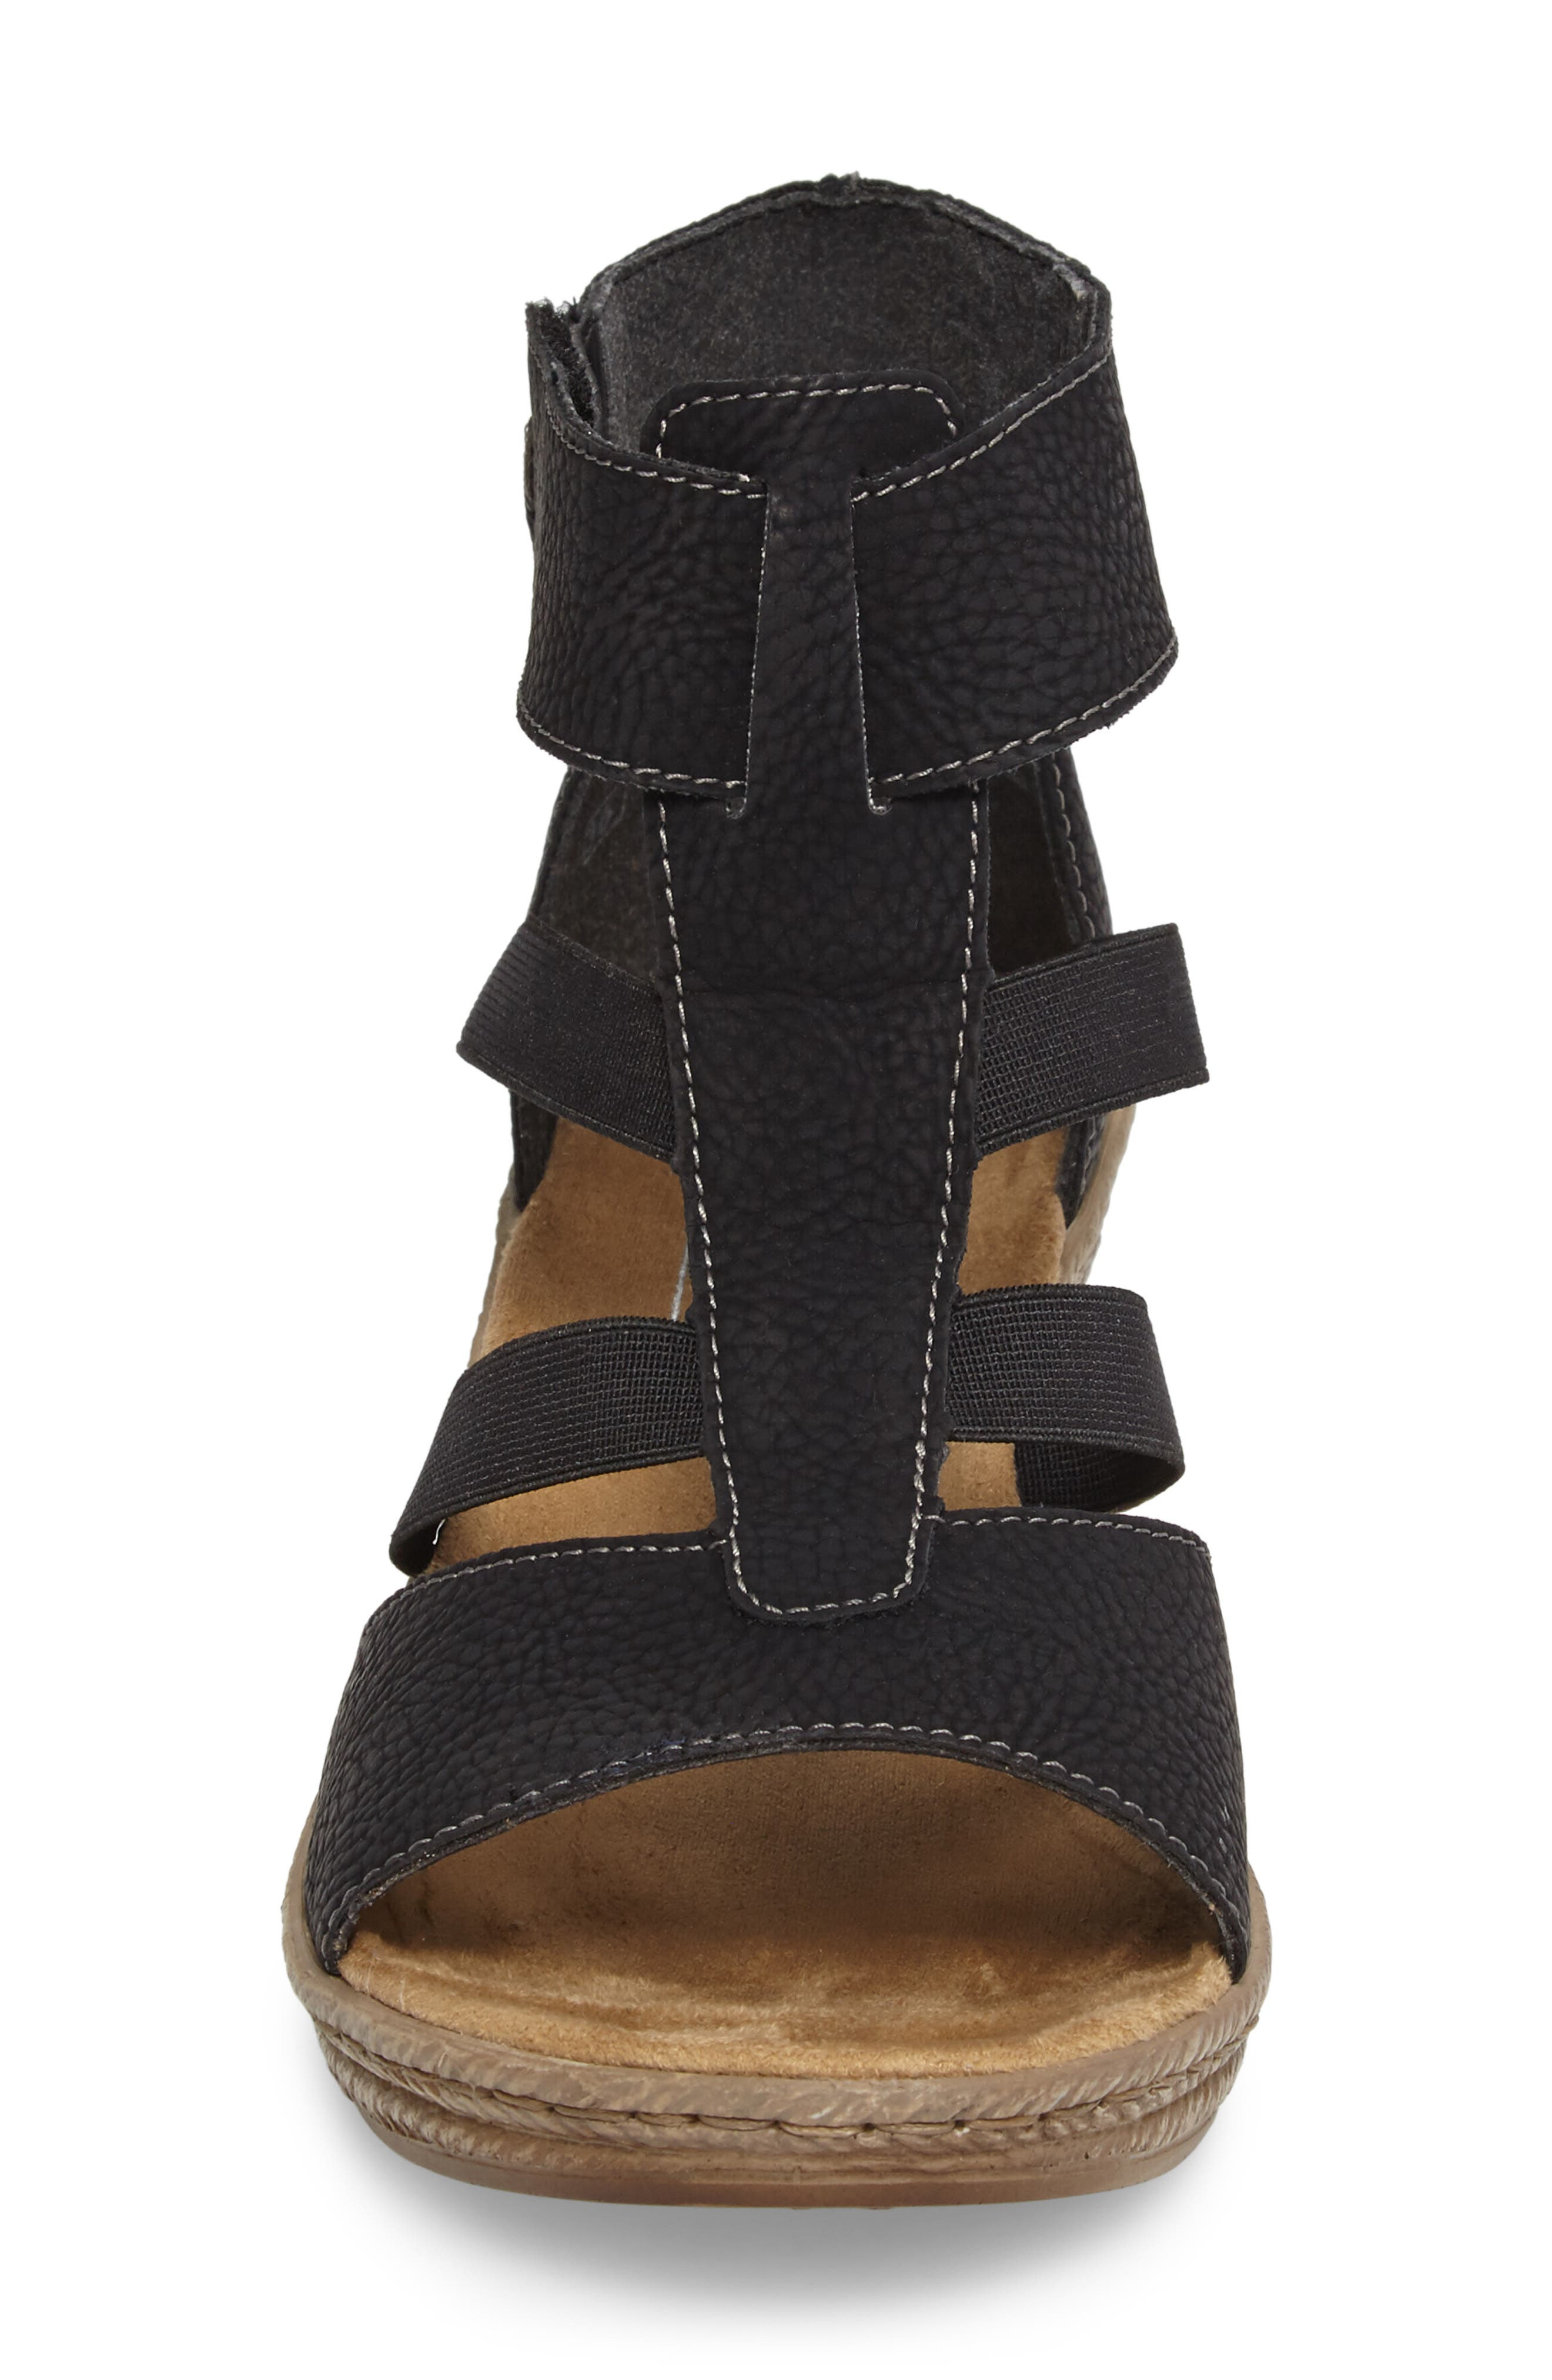 Alternate Image 4  - Rieker Antistress Fanni 39 Wedge Sandal (Women)